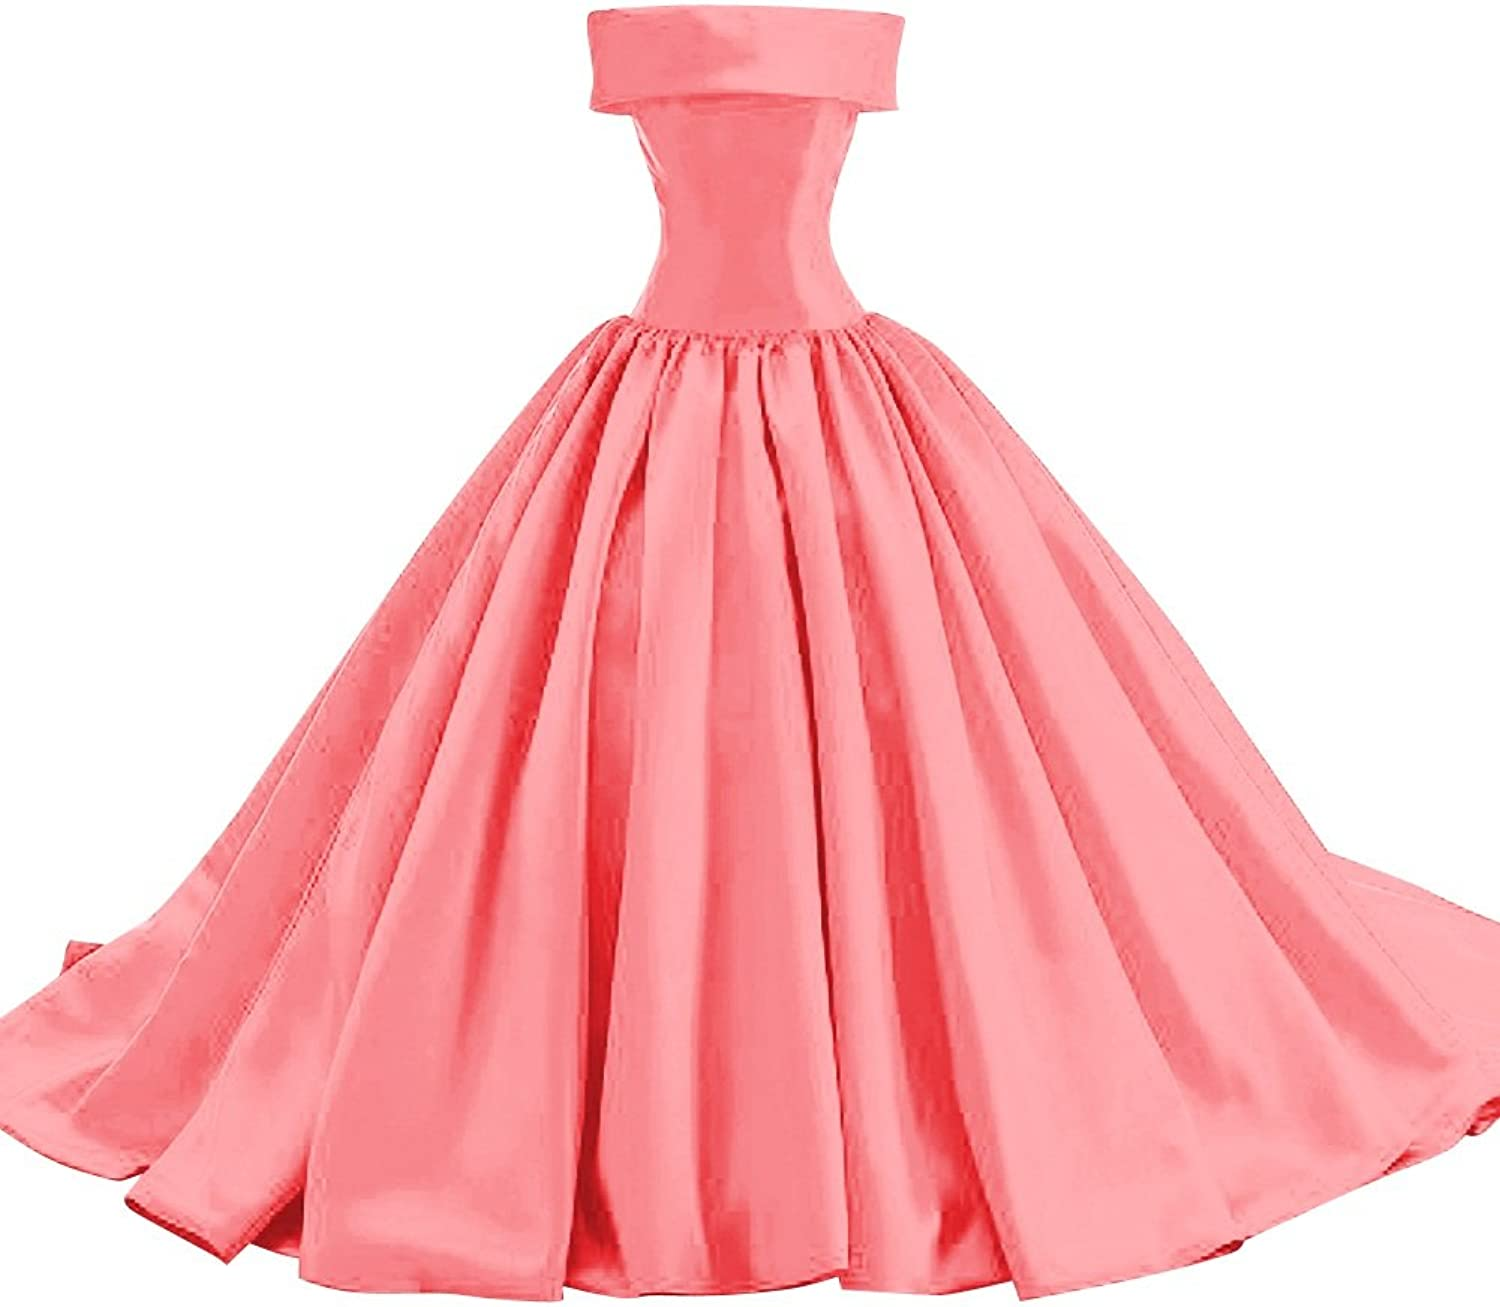 Bess Bridal Women's Ball Gown Lace Up Formal Prom Evening Dresses with Bows